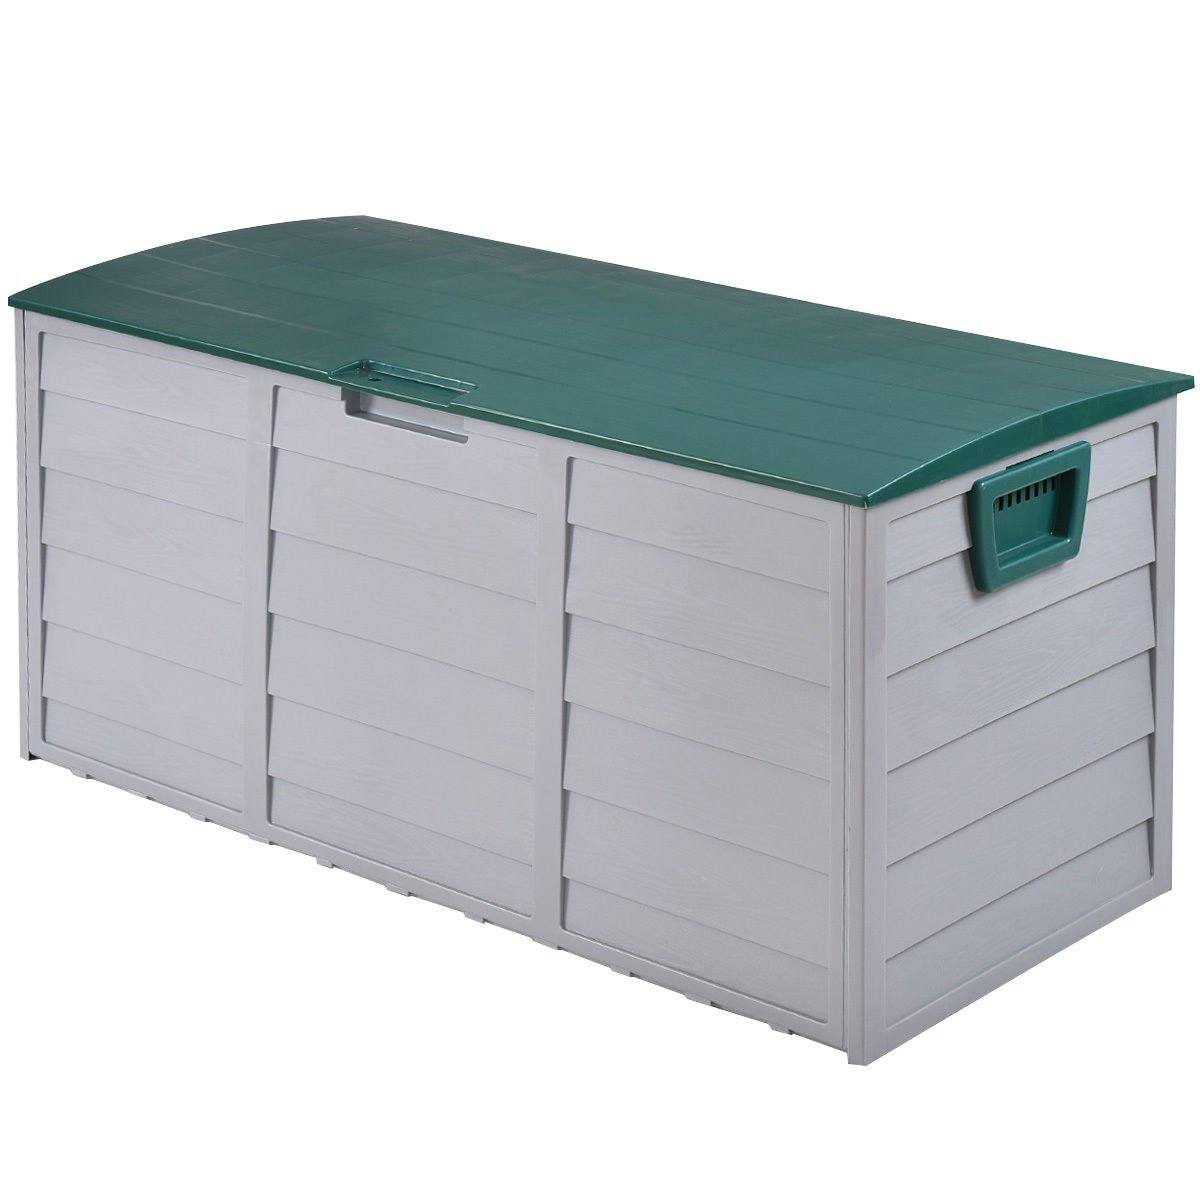 Patio Garage Shed Tool 44'' Deck Storage Box 70 Gallon Outdoor Bench Container this box wheels